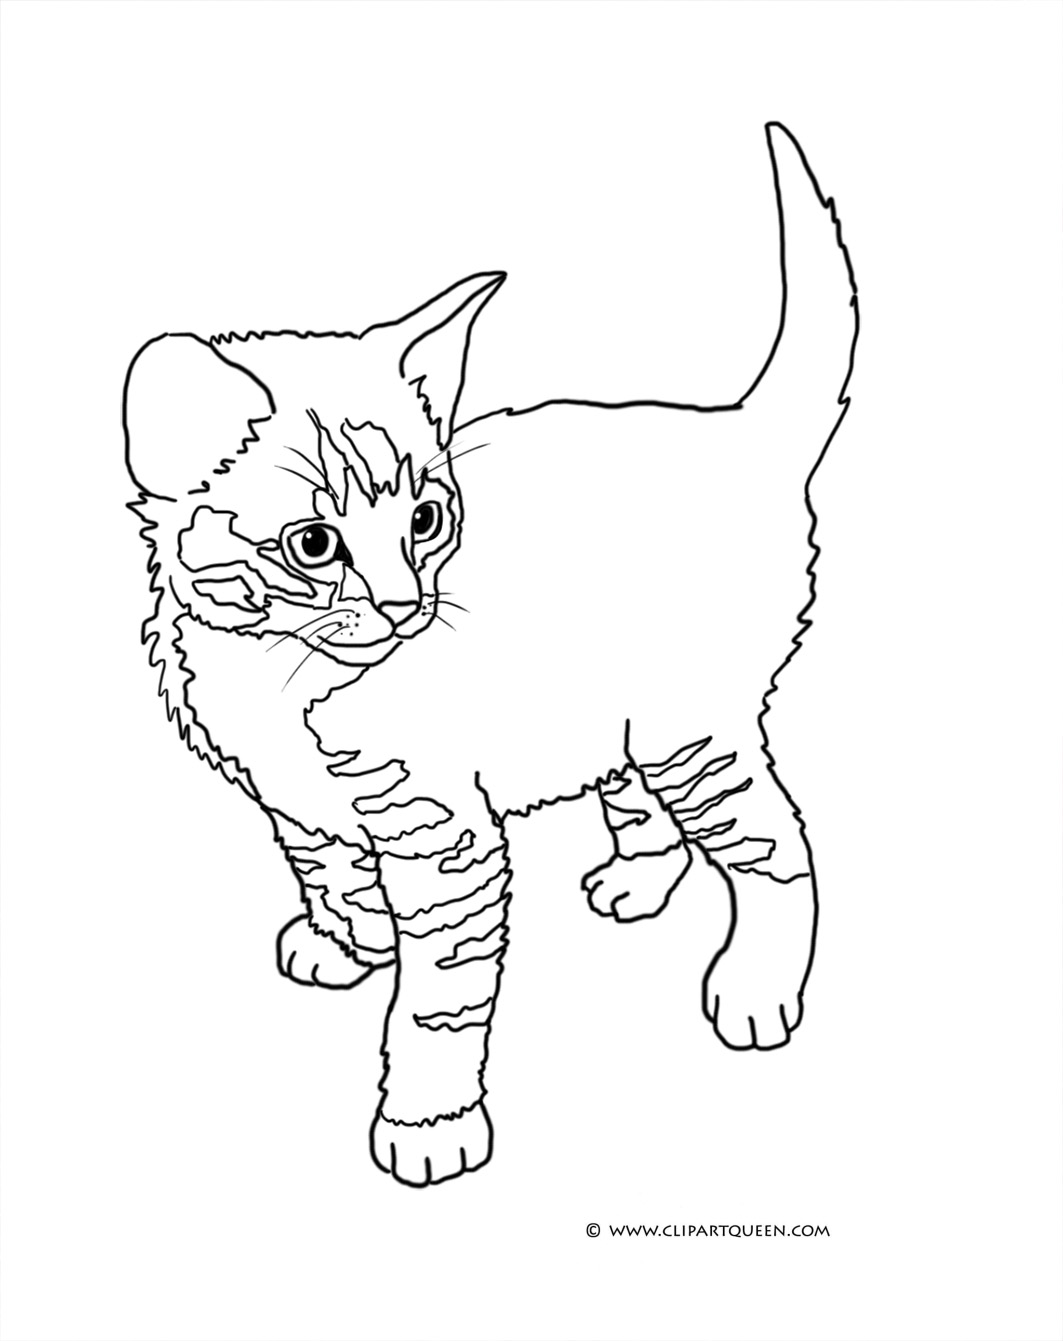 Cute Cat Coloring Page Sheet Two Kittens Playing Little Kitten Standing